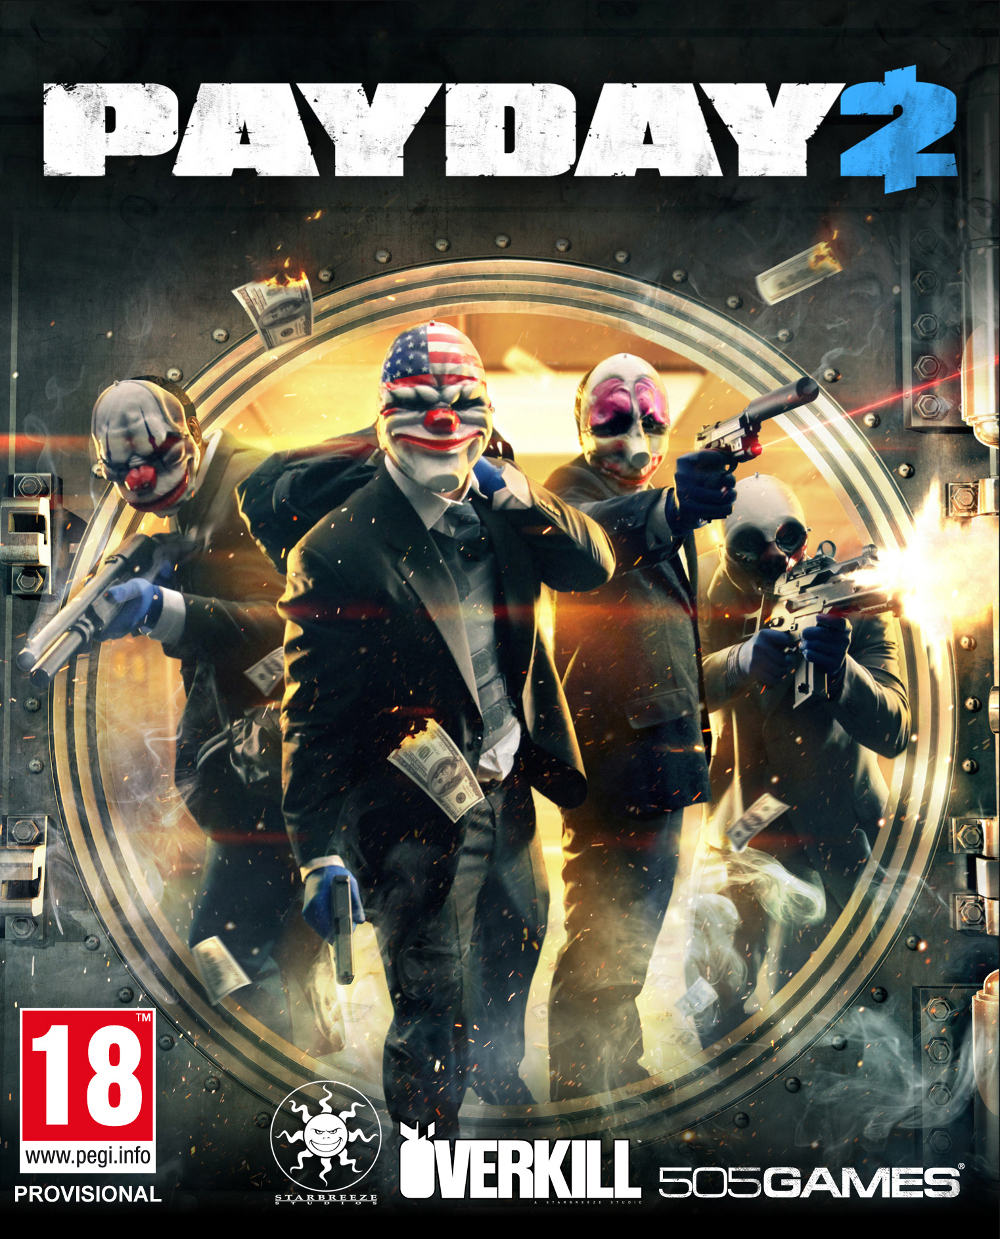 PAYDAY_2_Cover.jpg